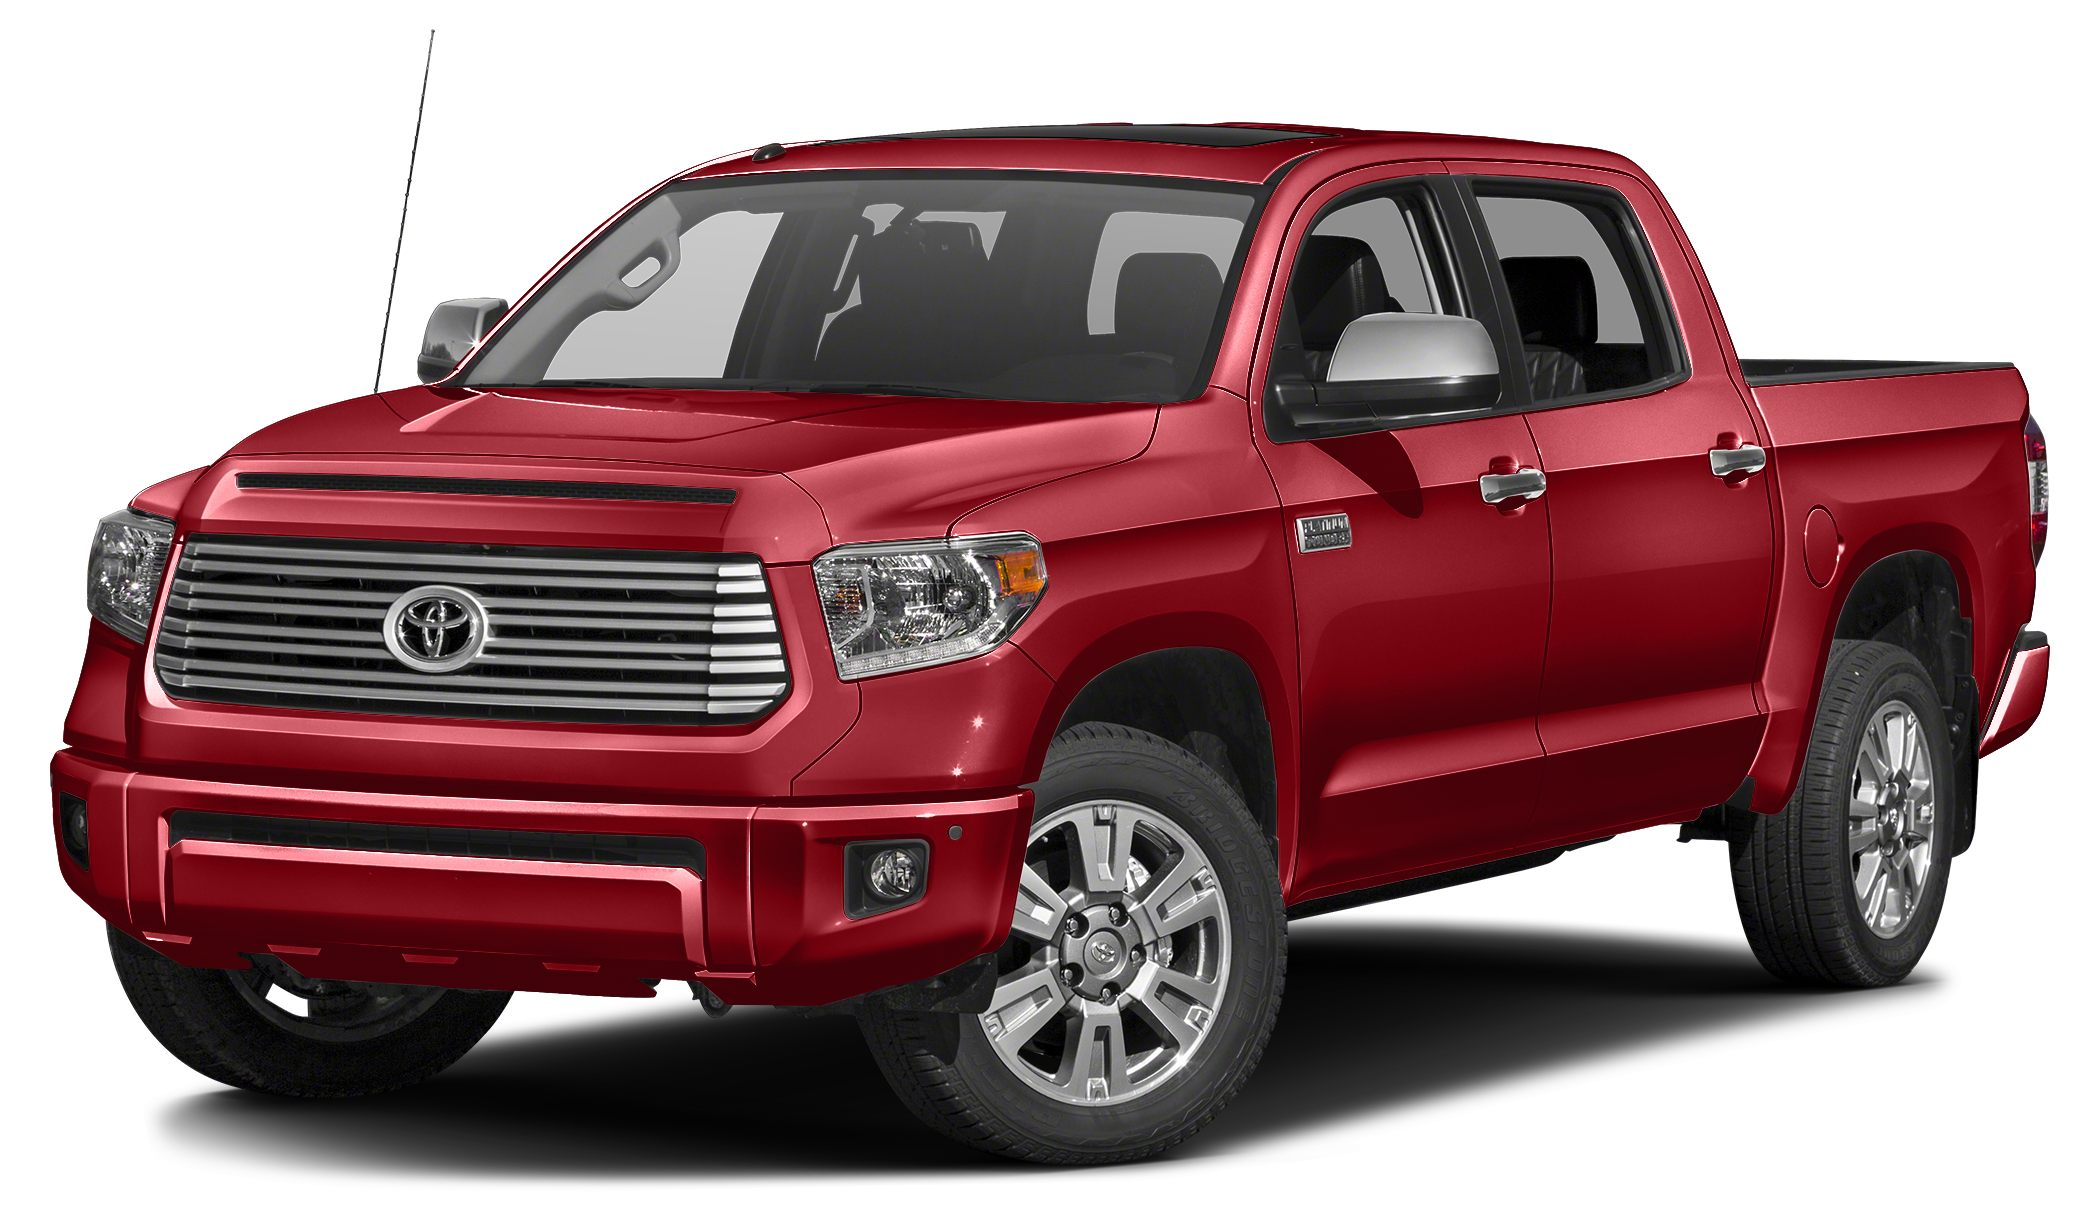 2016 Toyota Tundra Platinum Westboro Toyota is proud to present HASSLE FREE BUYING EXPERIENCE with